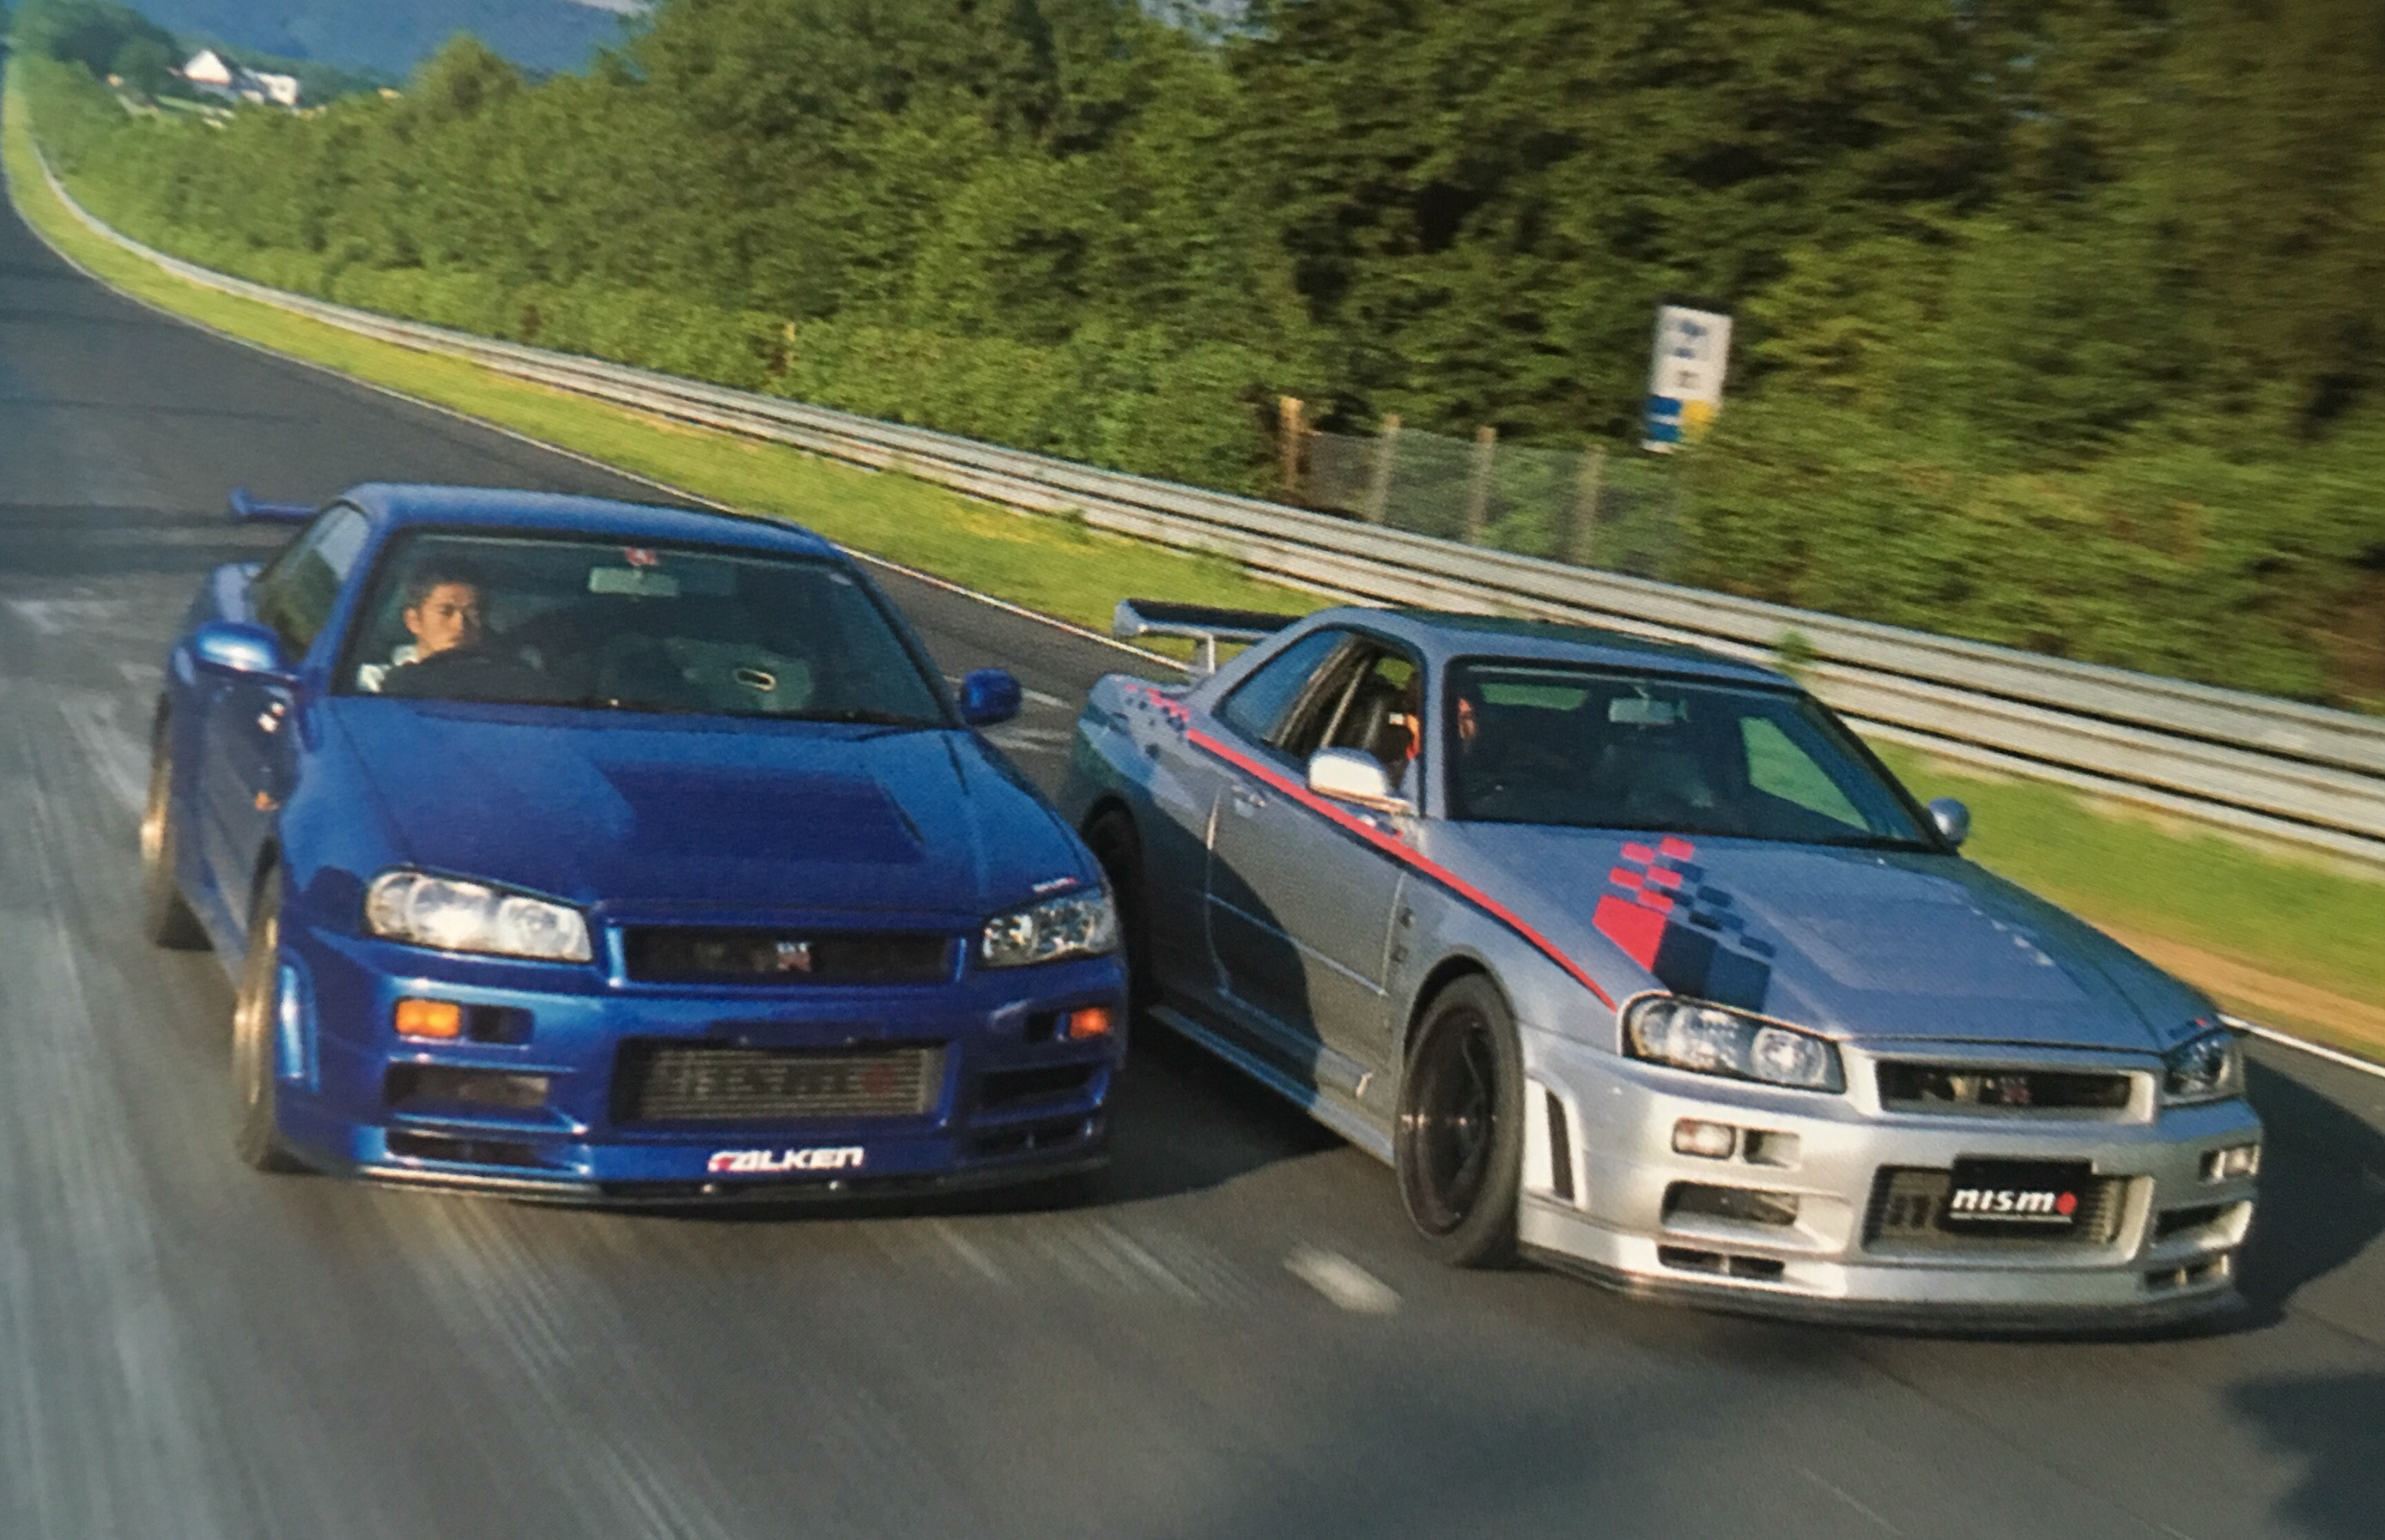 Newbie! R34 GT-R R-tune #001 owner from the netherlands - Newbie